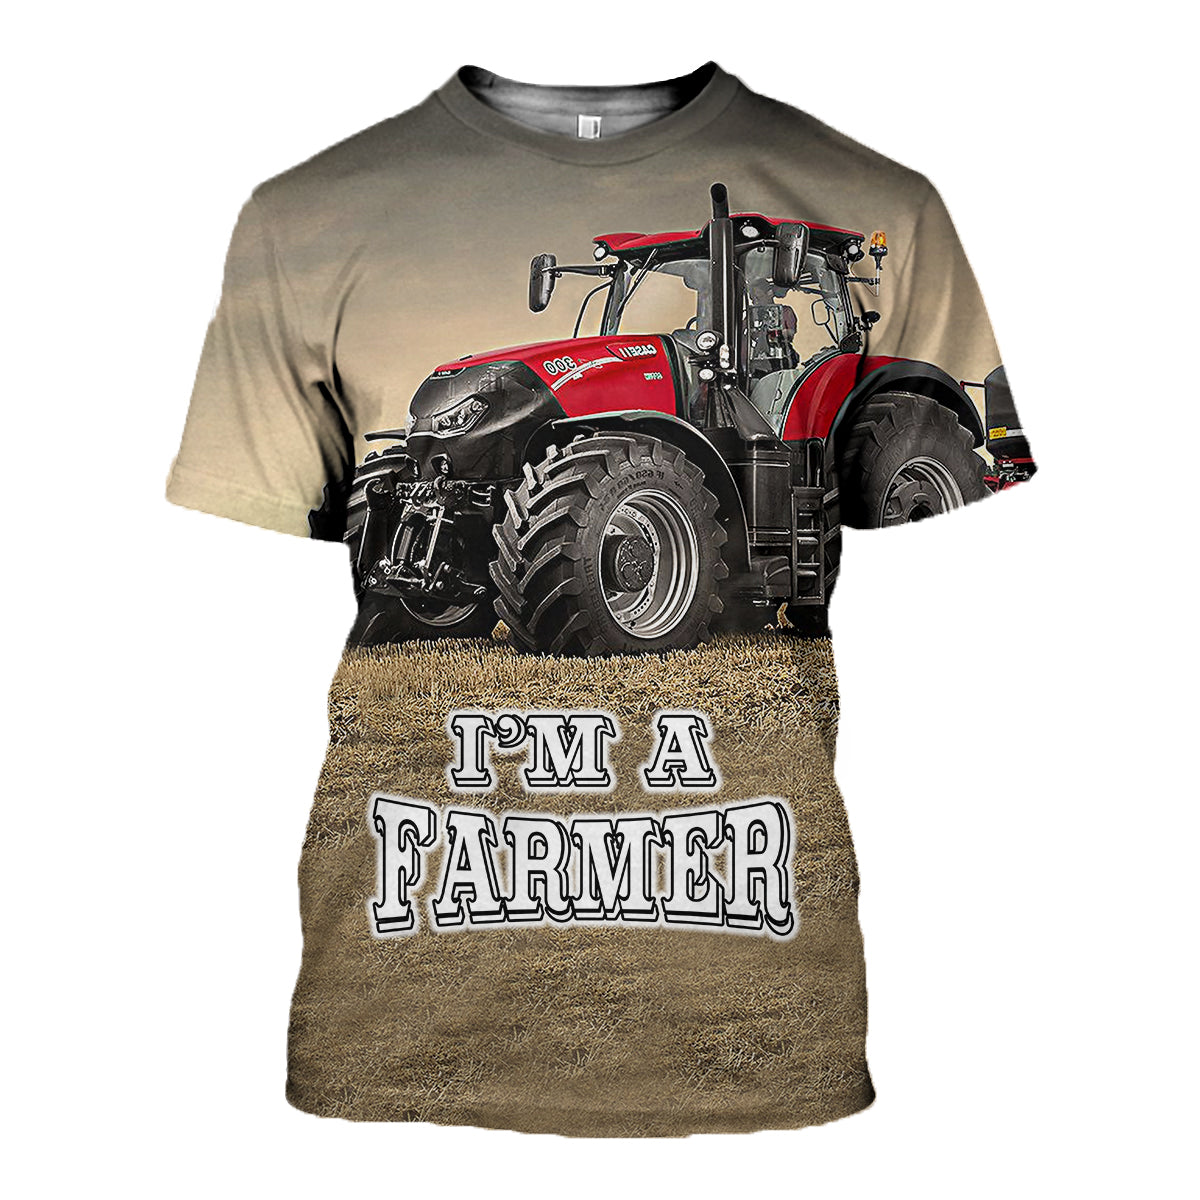 3D All Over Printed Tractor case IH optum 300 cvx T-shirt Hoodie SNTL110404